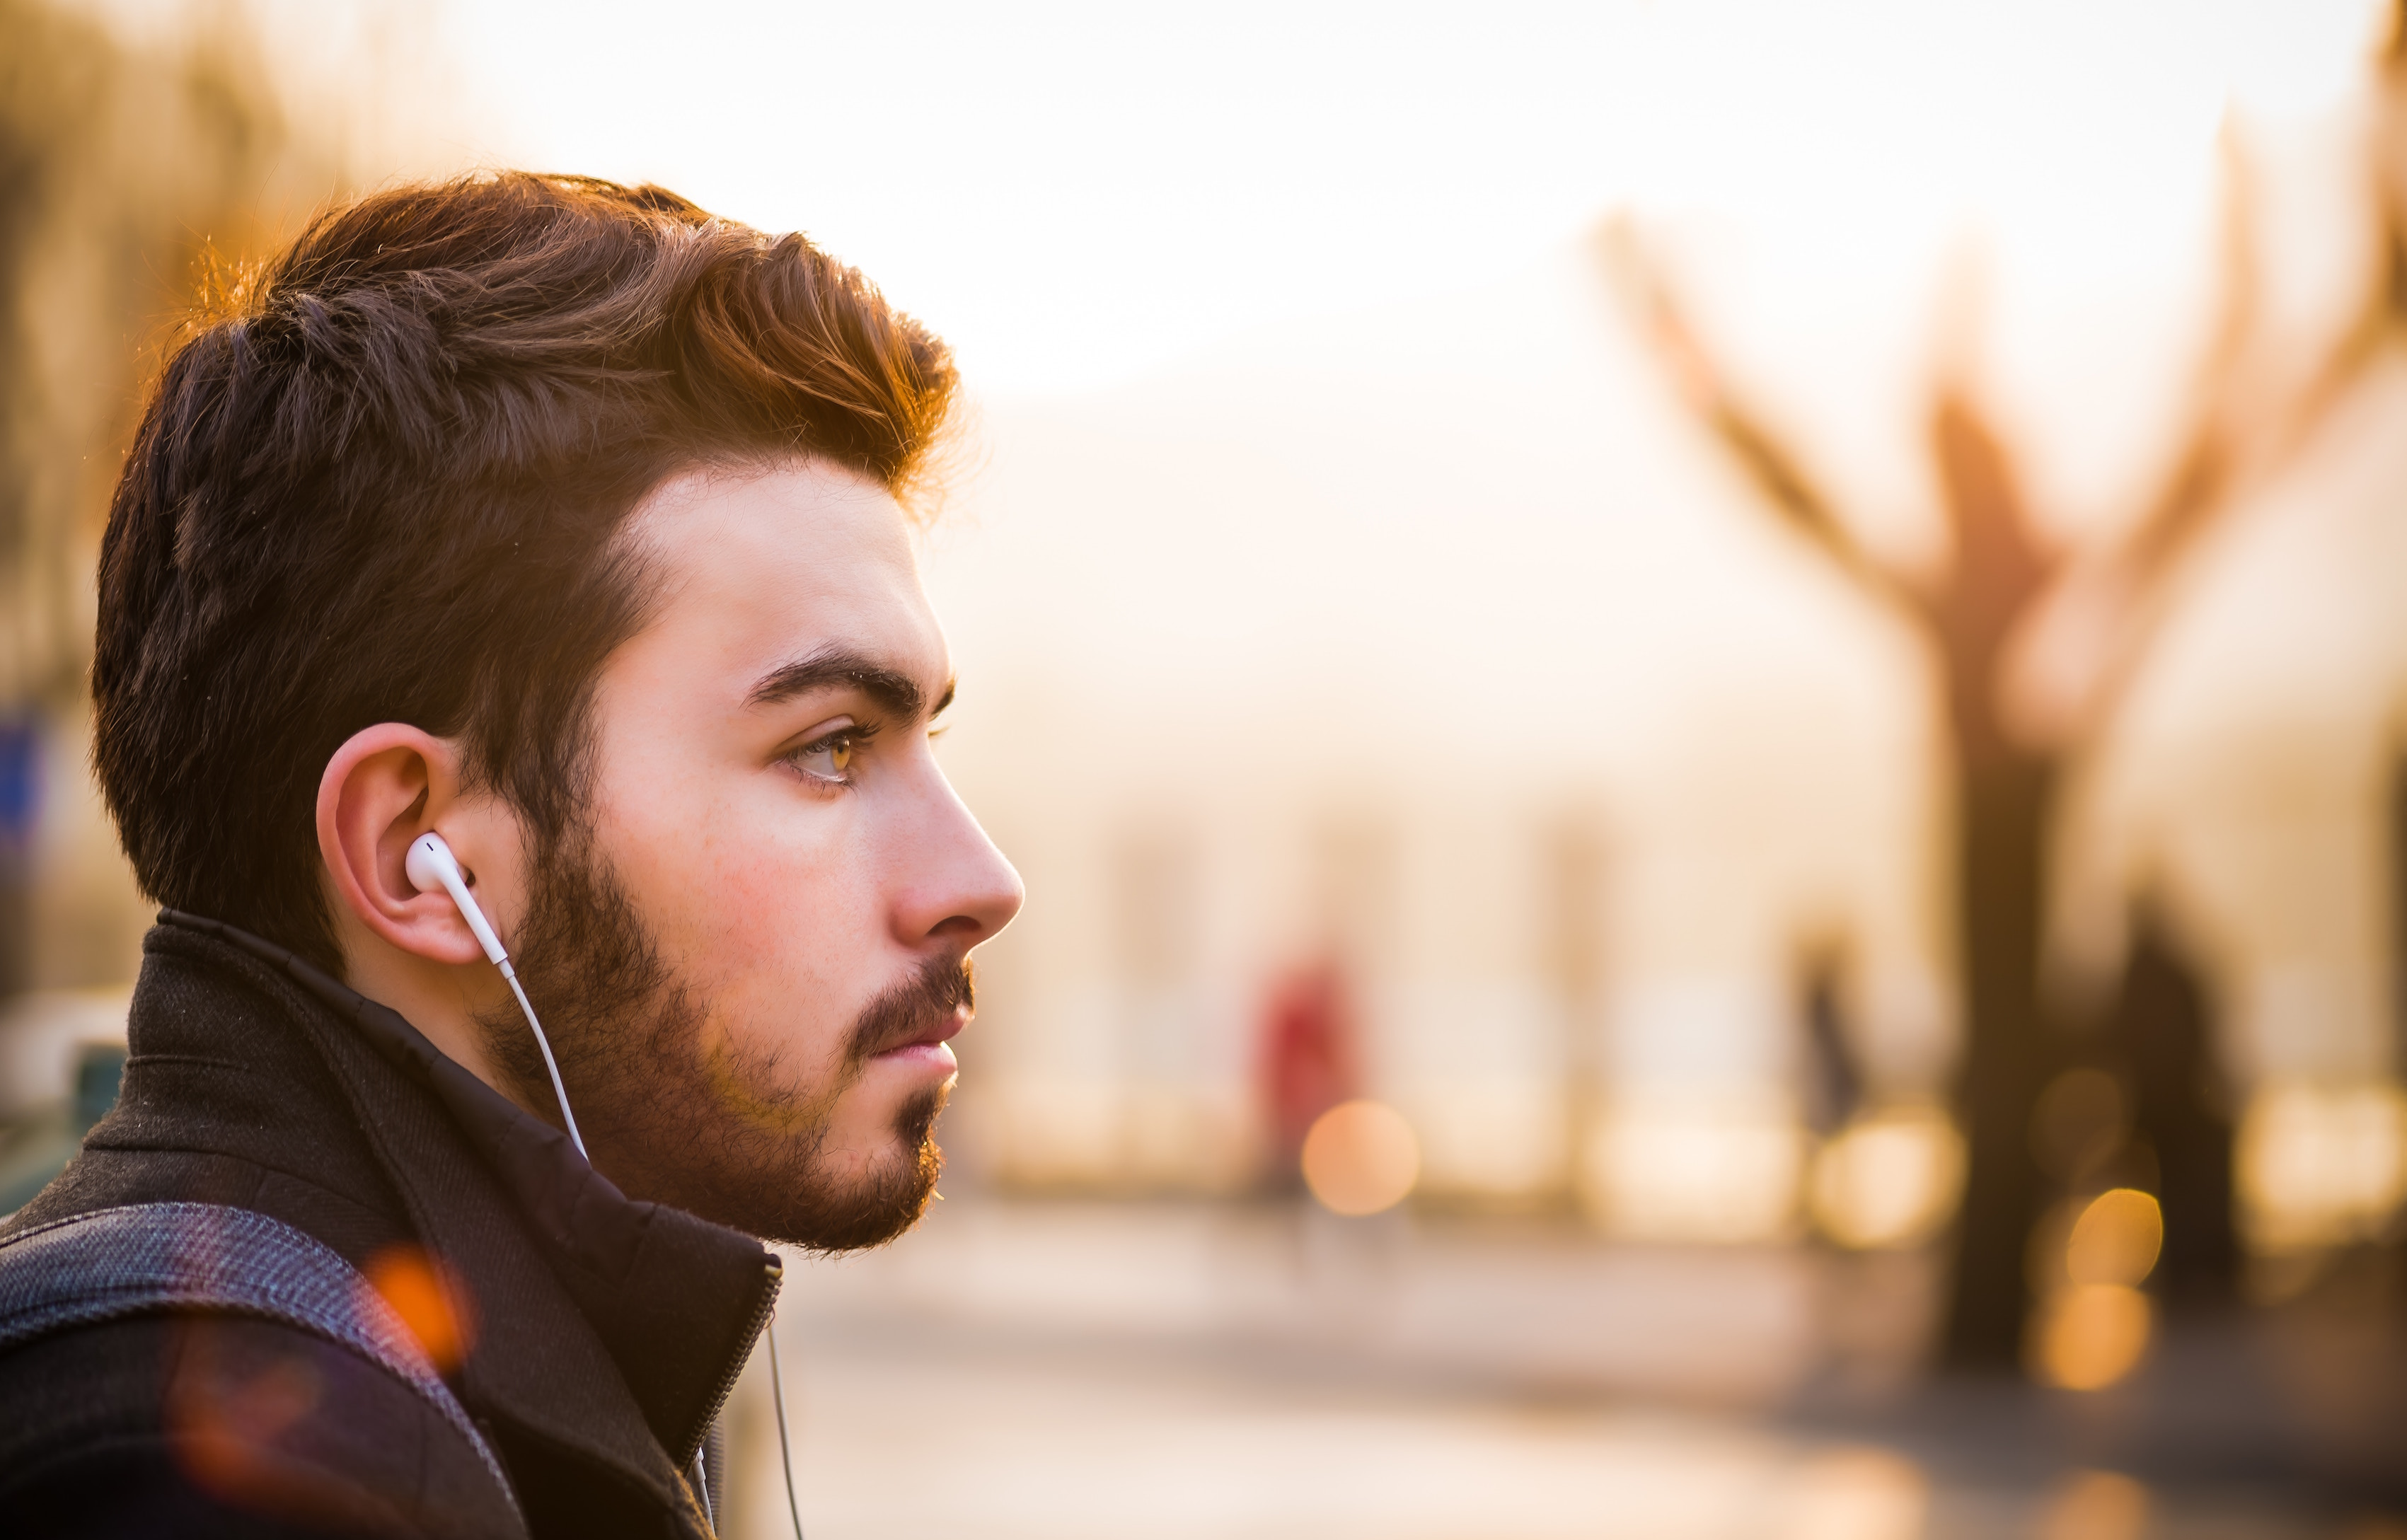 Why and how you should look after your hearing